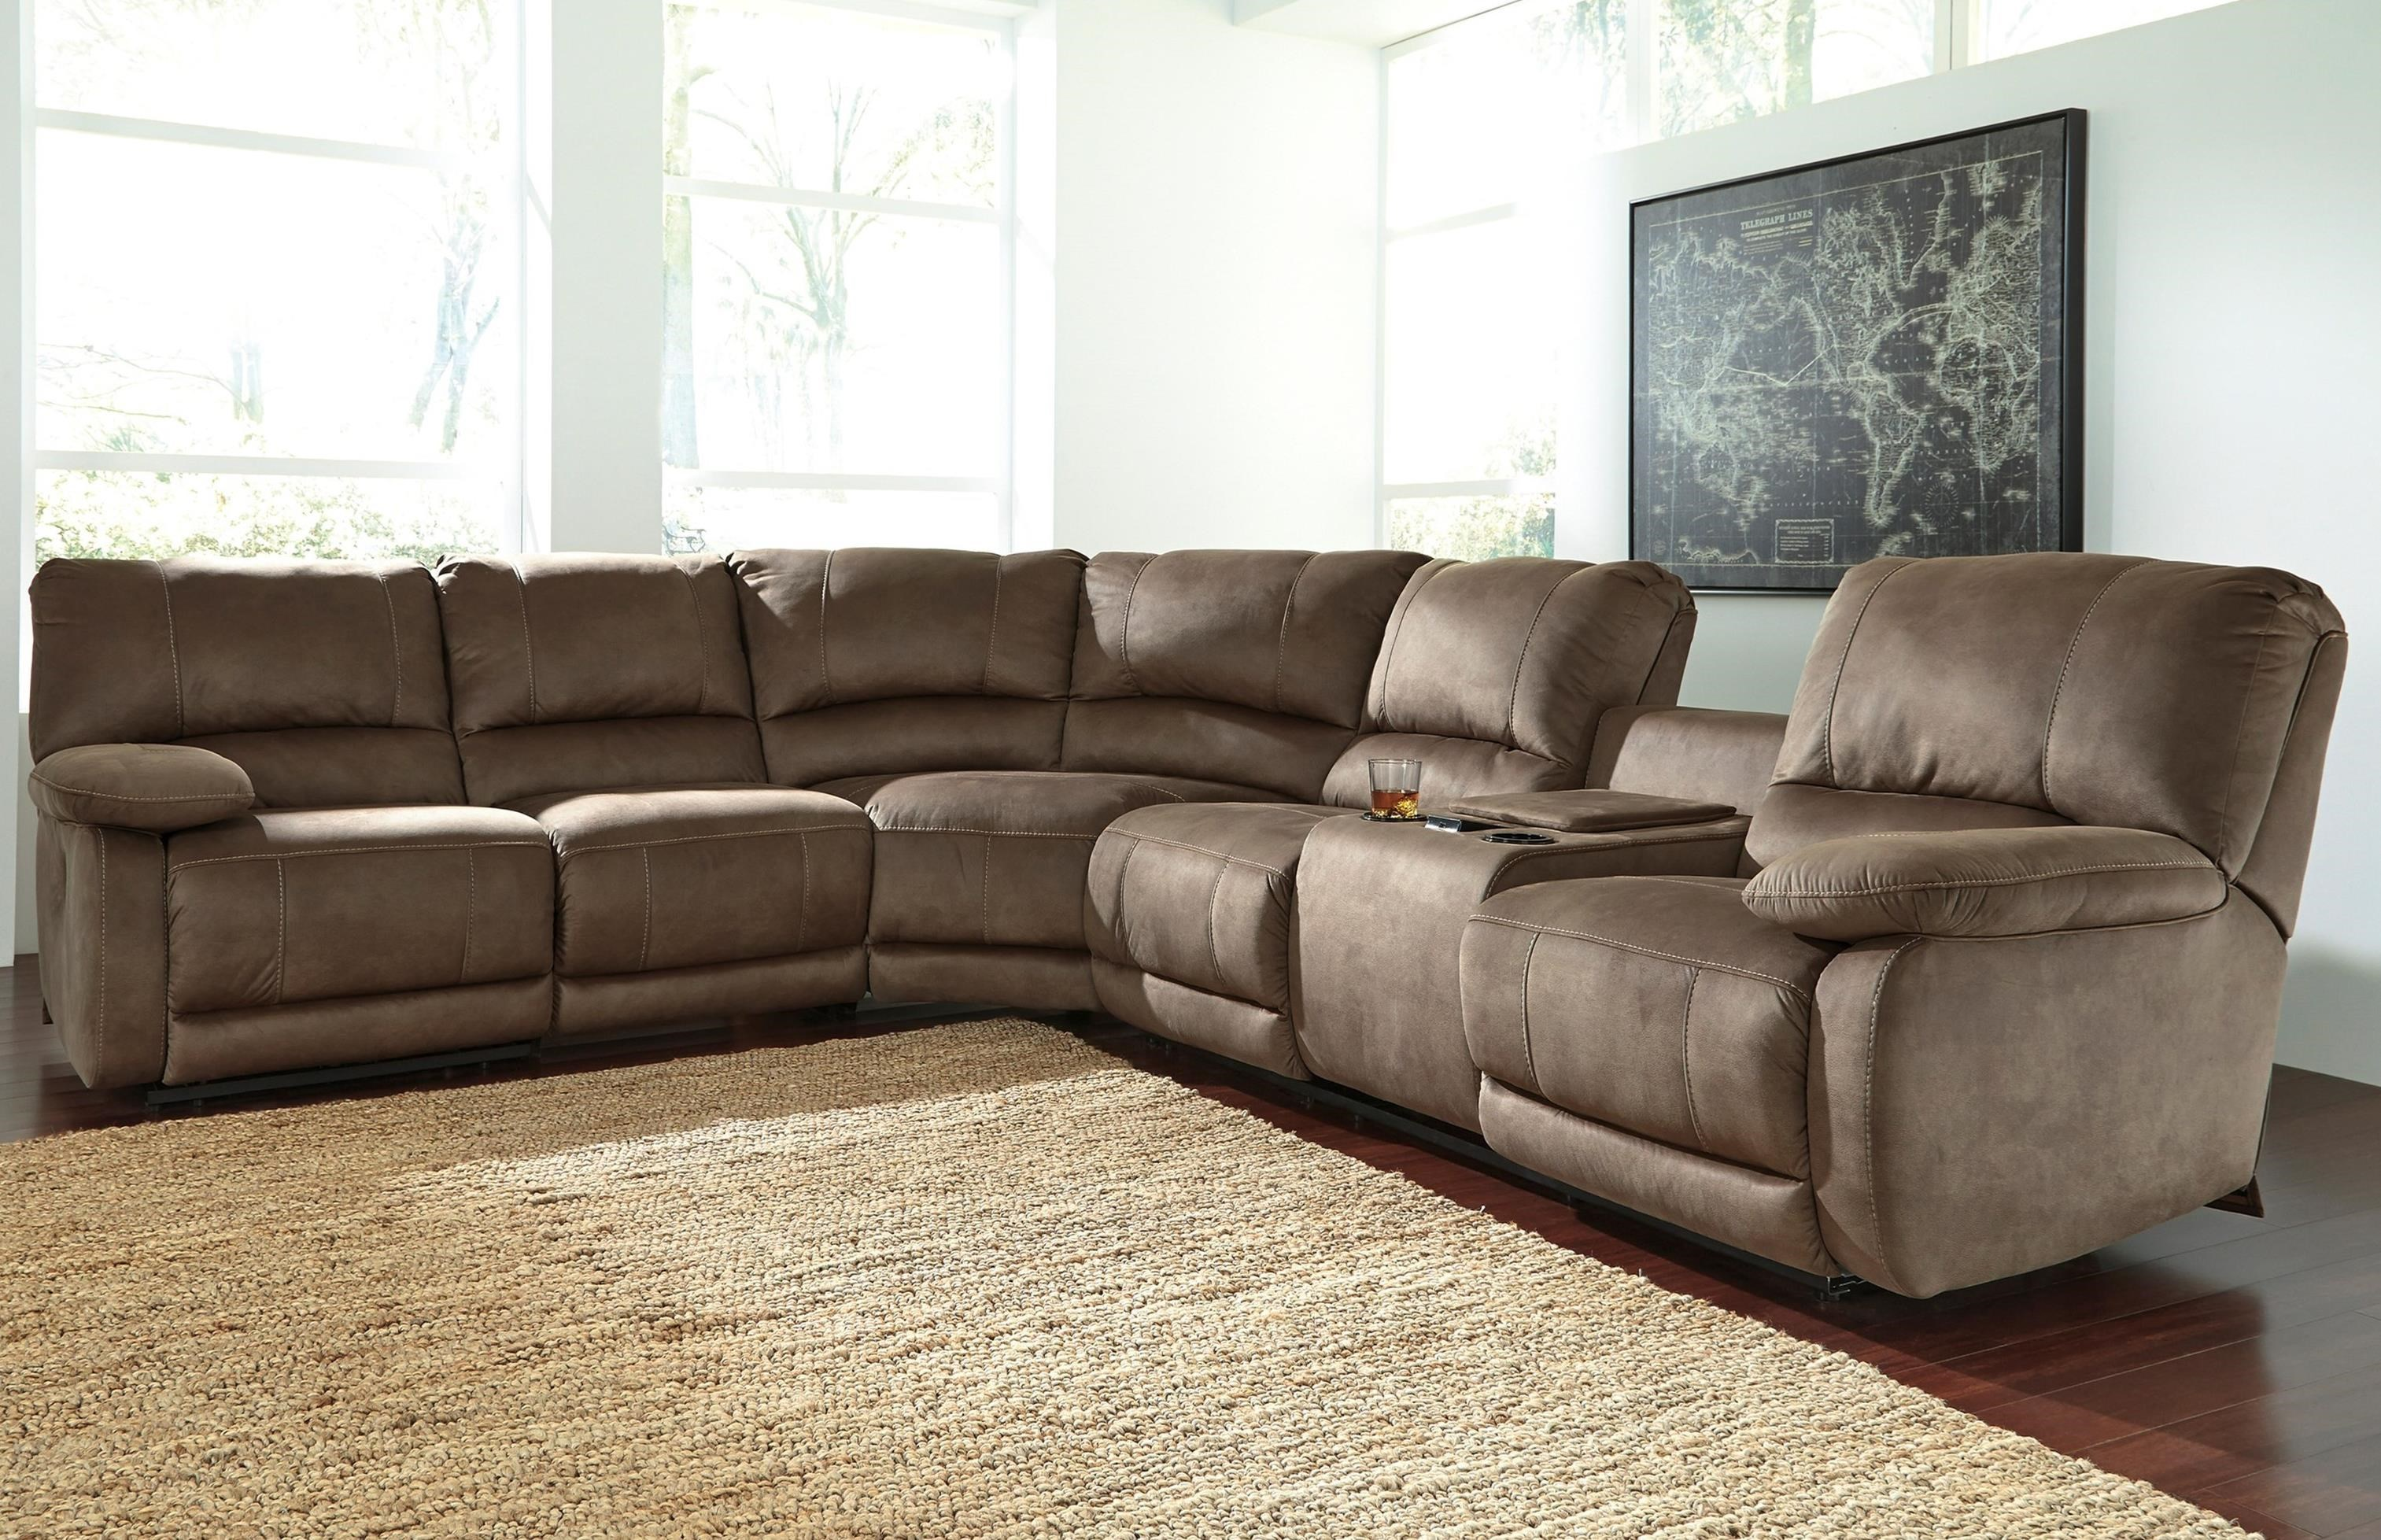 Signature Design by Ashley Seamus Power Reclining Sectional with Massage - Pedigo Furniture - Reclining Sectional Sofas & Signature Design by Ashley Seamus Power Reclining Sectional with ... islam-shia.org